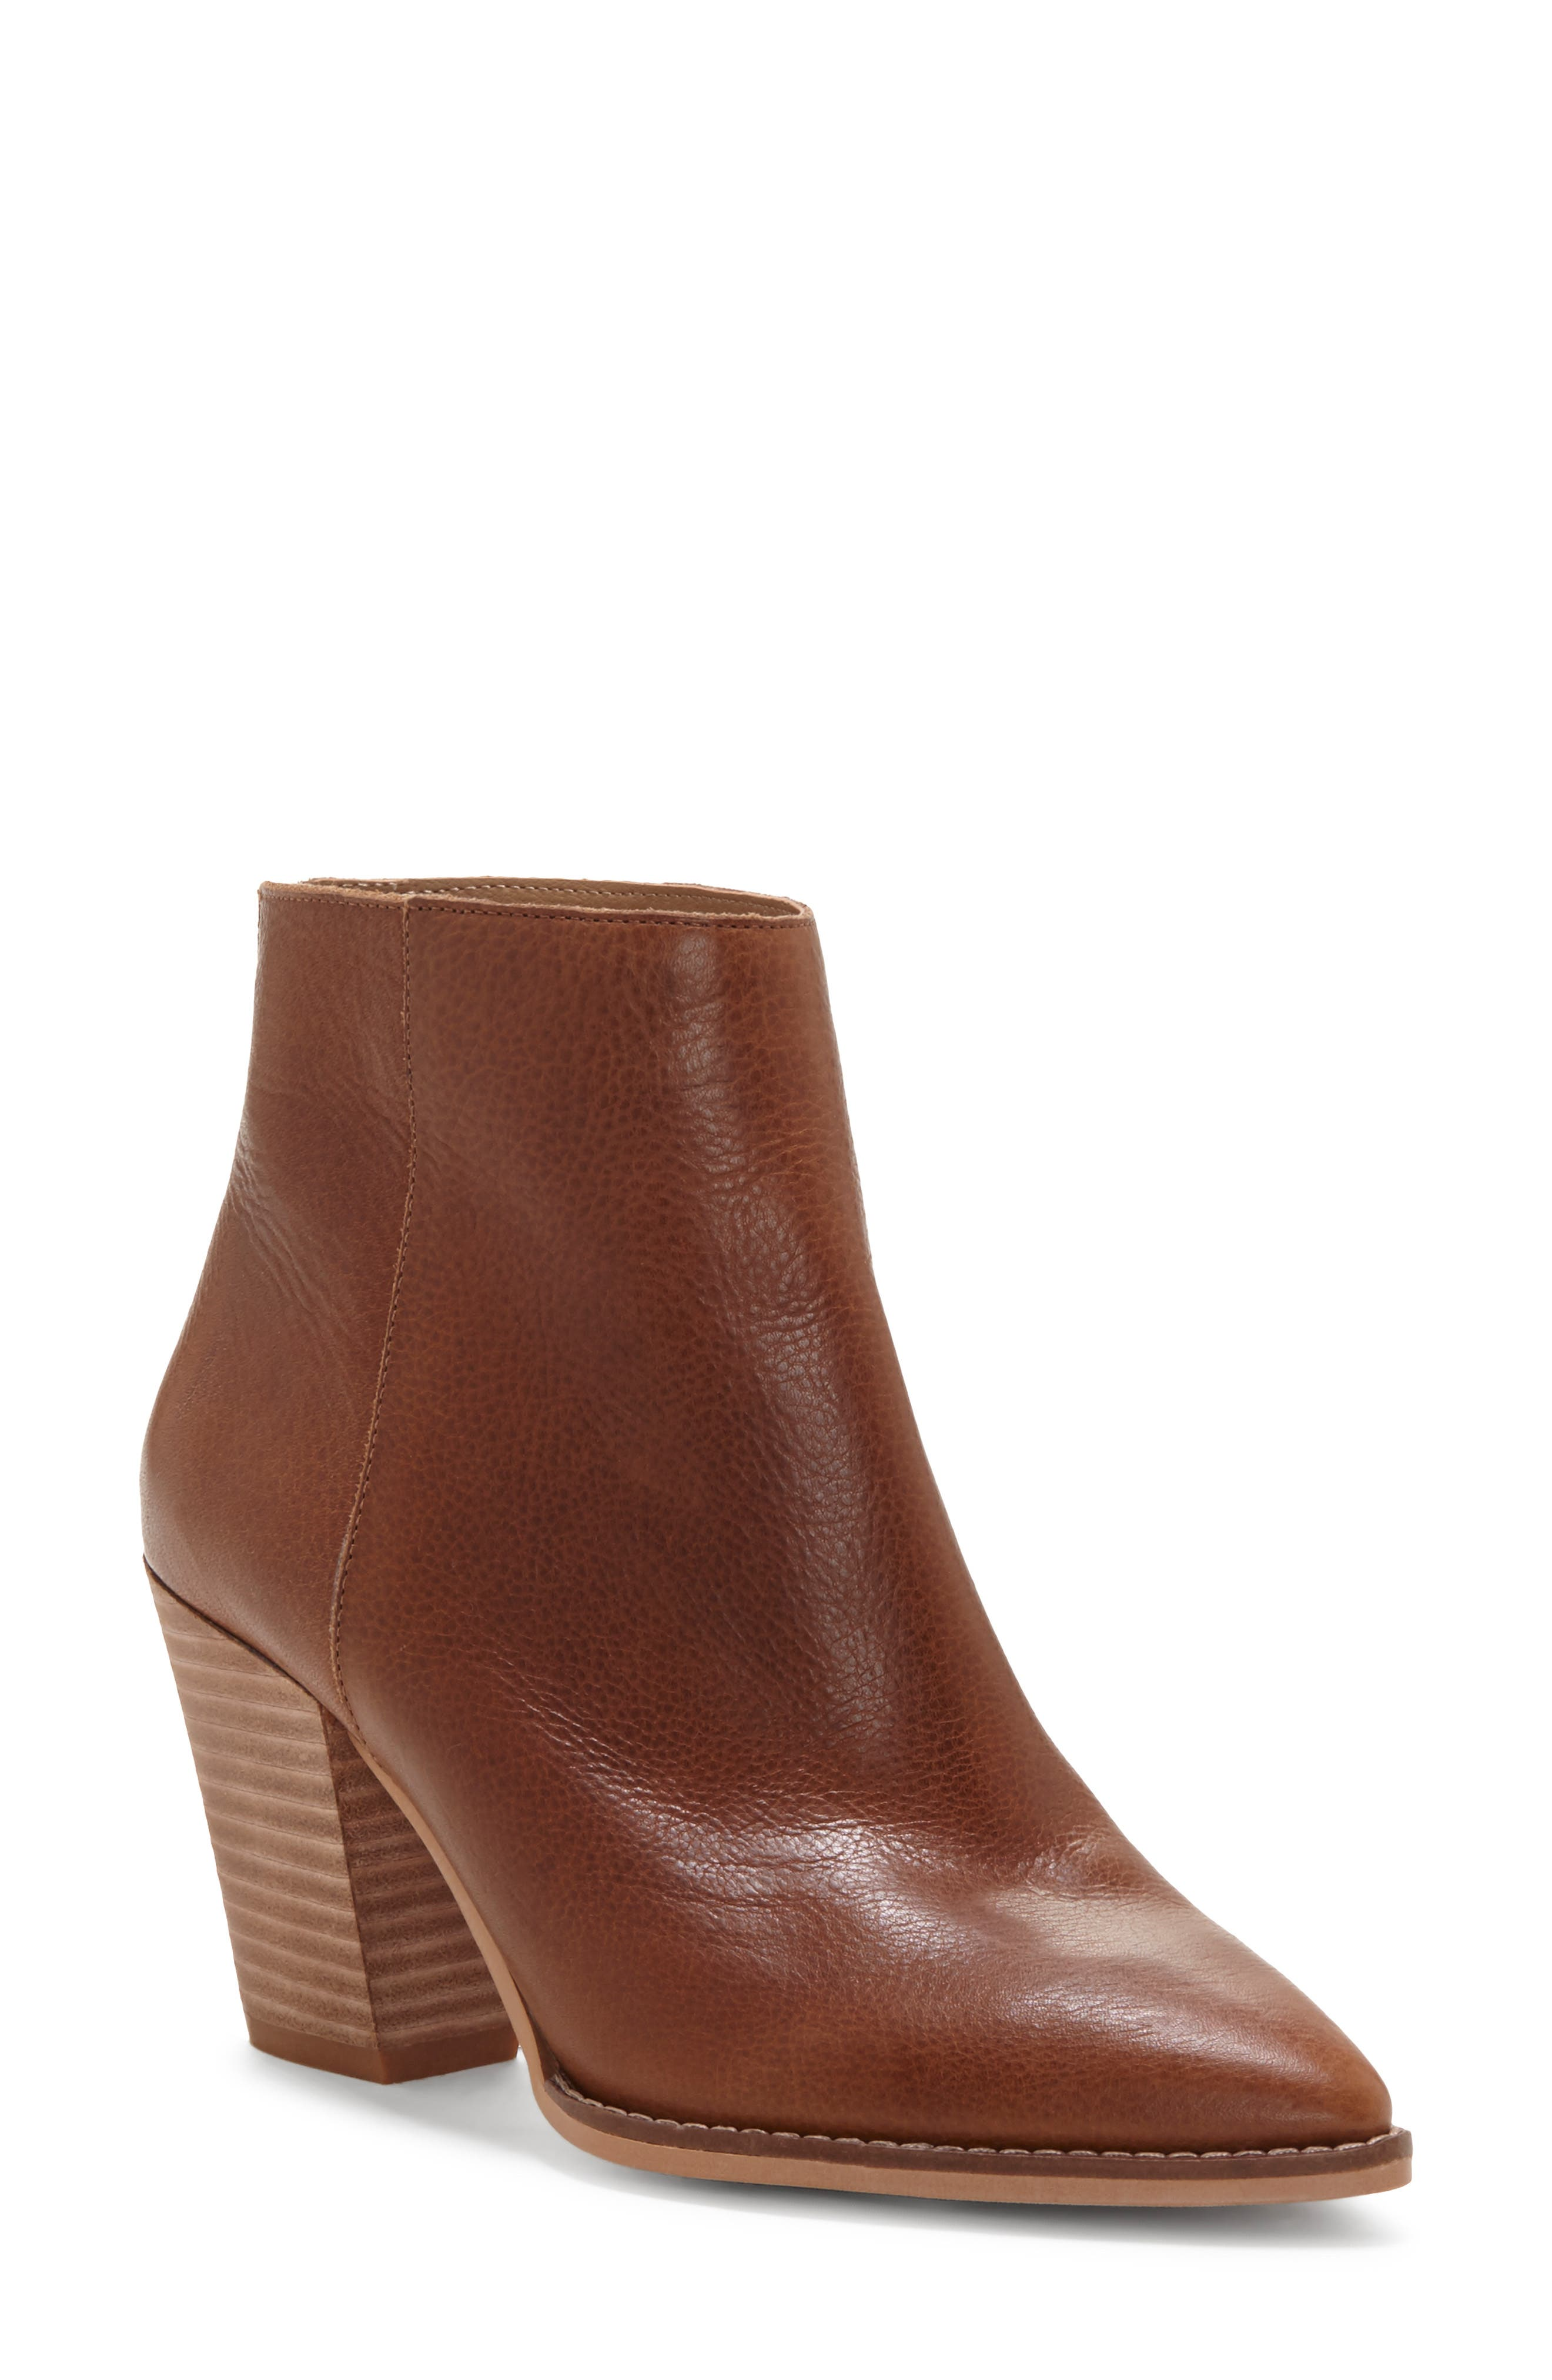 LUCKY BRAND Adalan Bootie, Main, color, MACAROON LEATHER